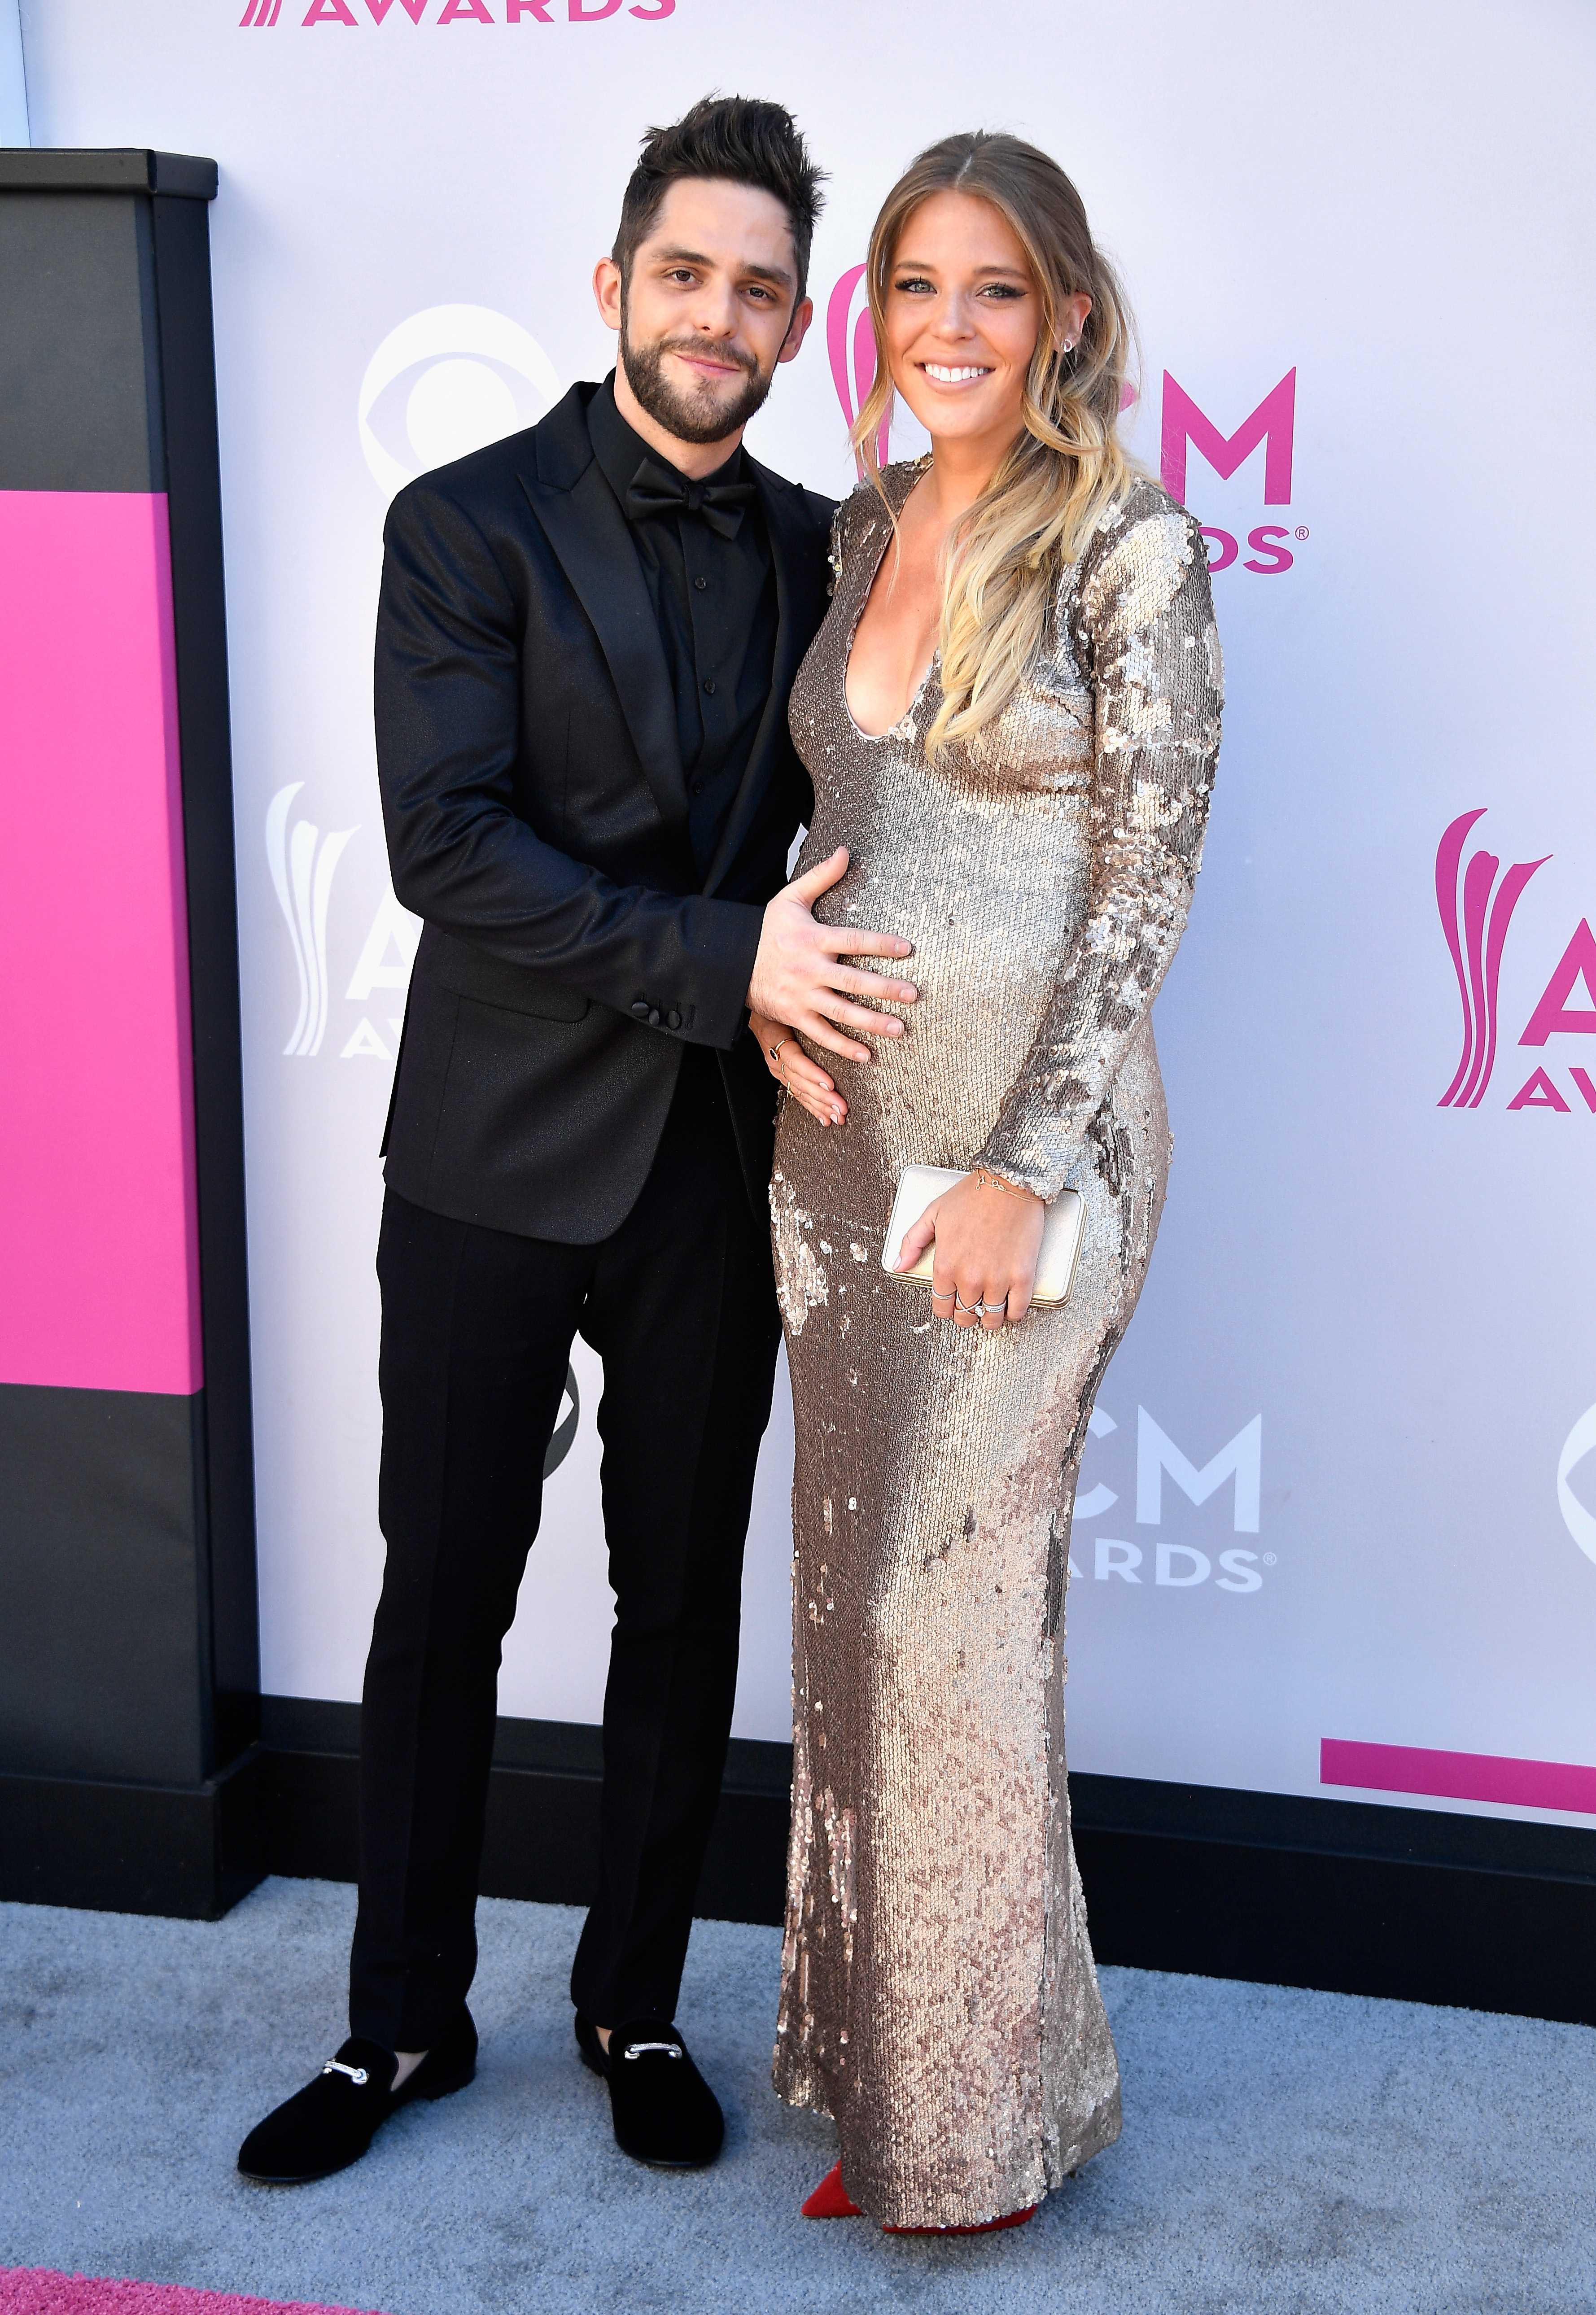 Thomas Rhett and Lauren Gregory Akins; Photo by Frazer Harrison/Getty Images